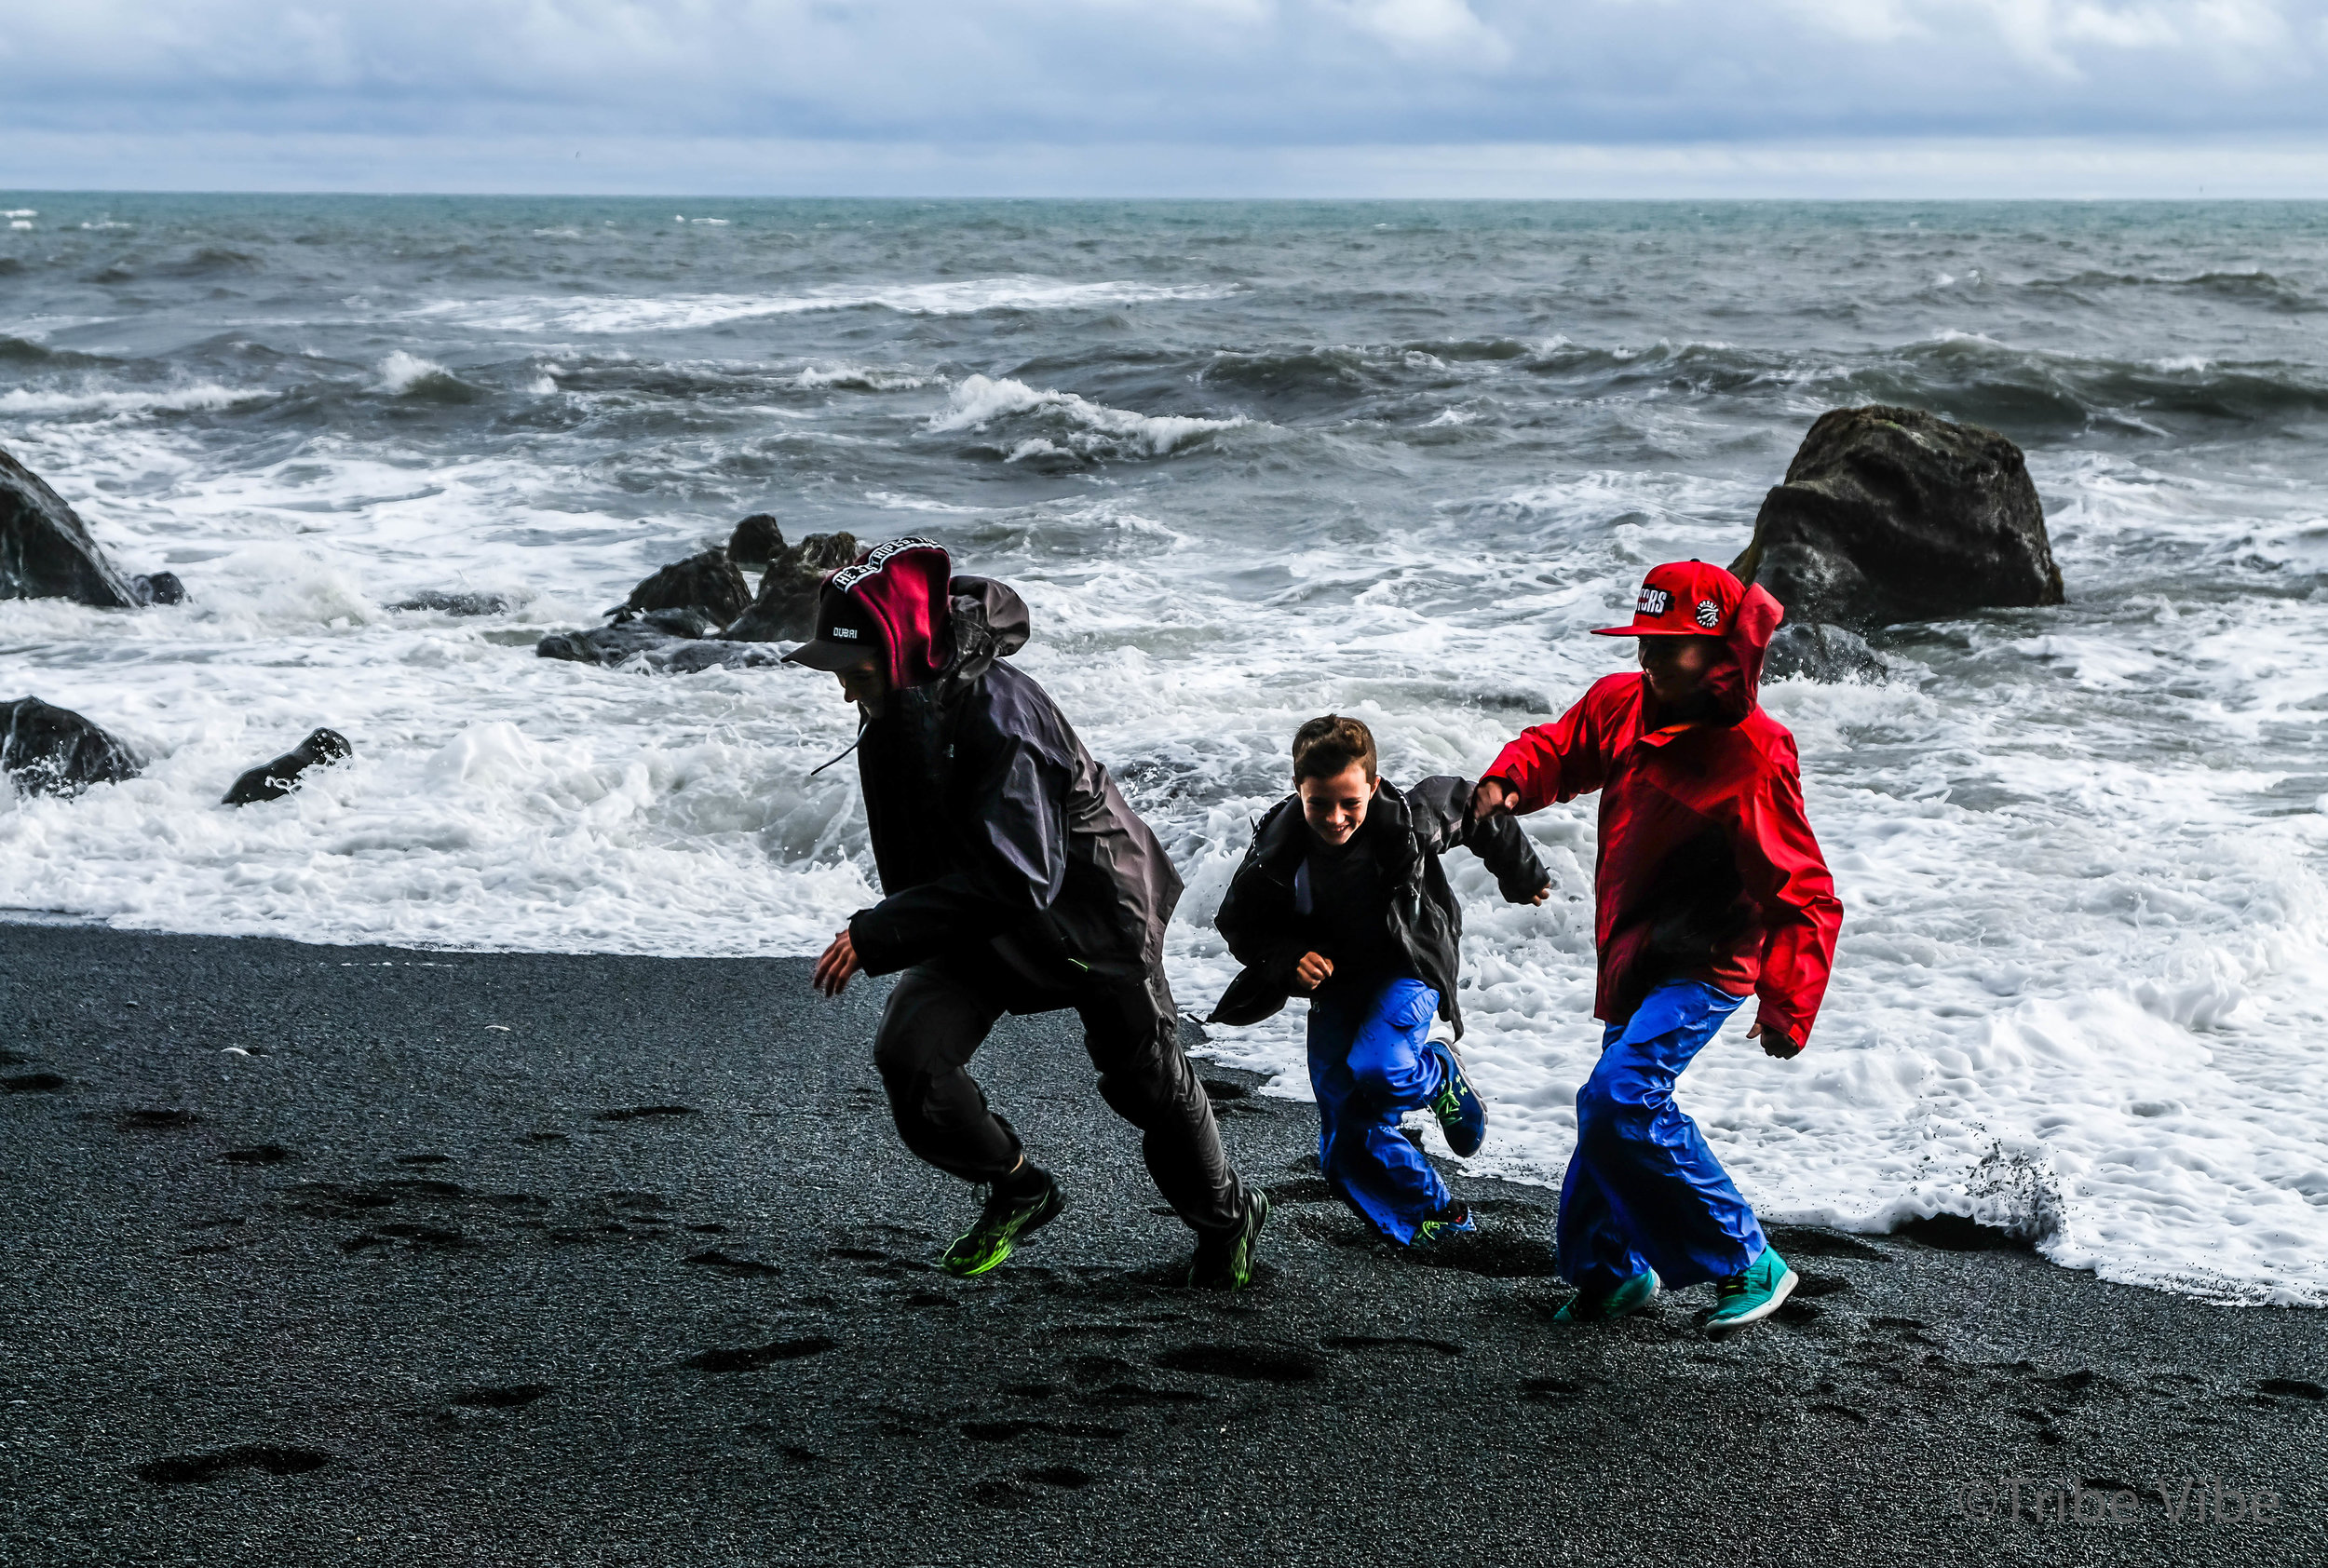 Chasing waves by the shore in Reynisdrangar, Iceland. Family road trip through Iceland.